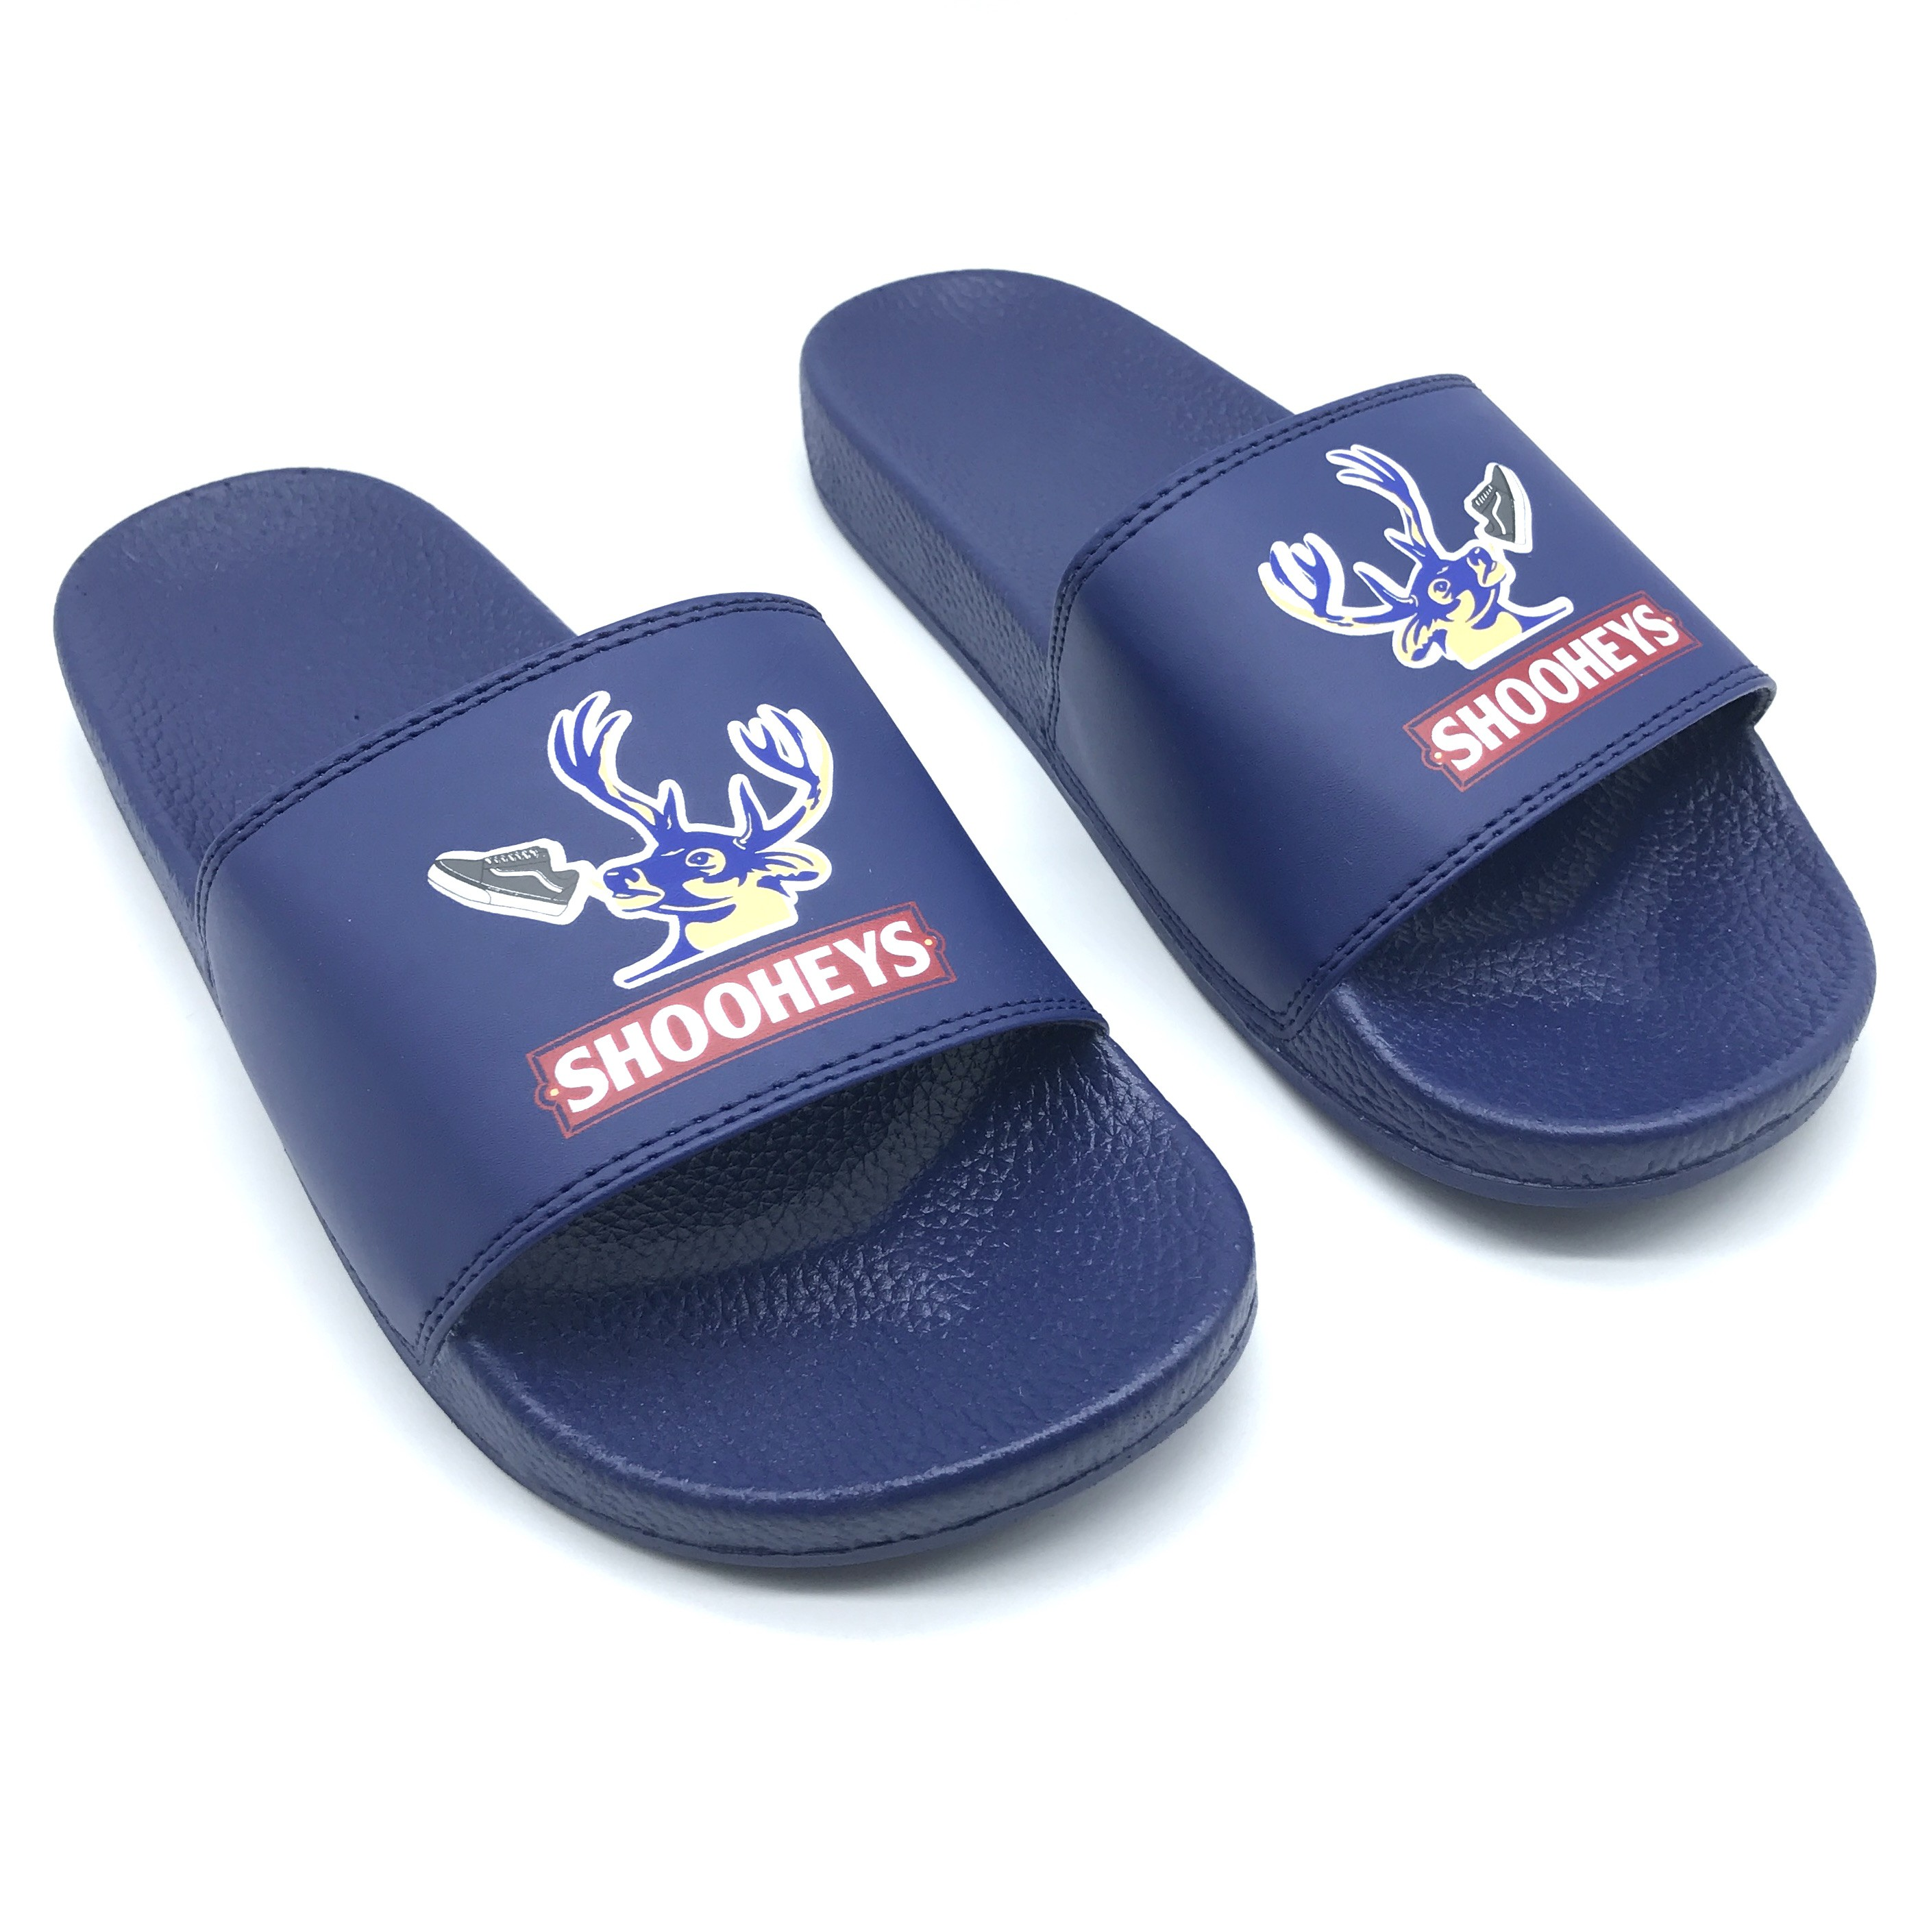 SHOOHEYS NAVY SLIDES